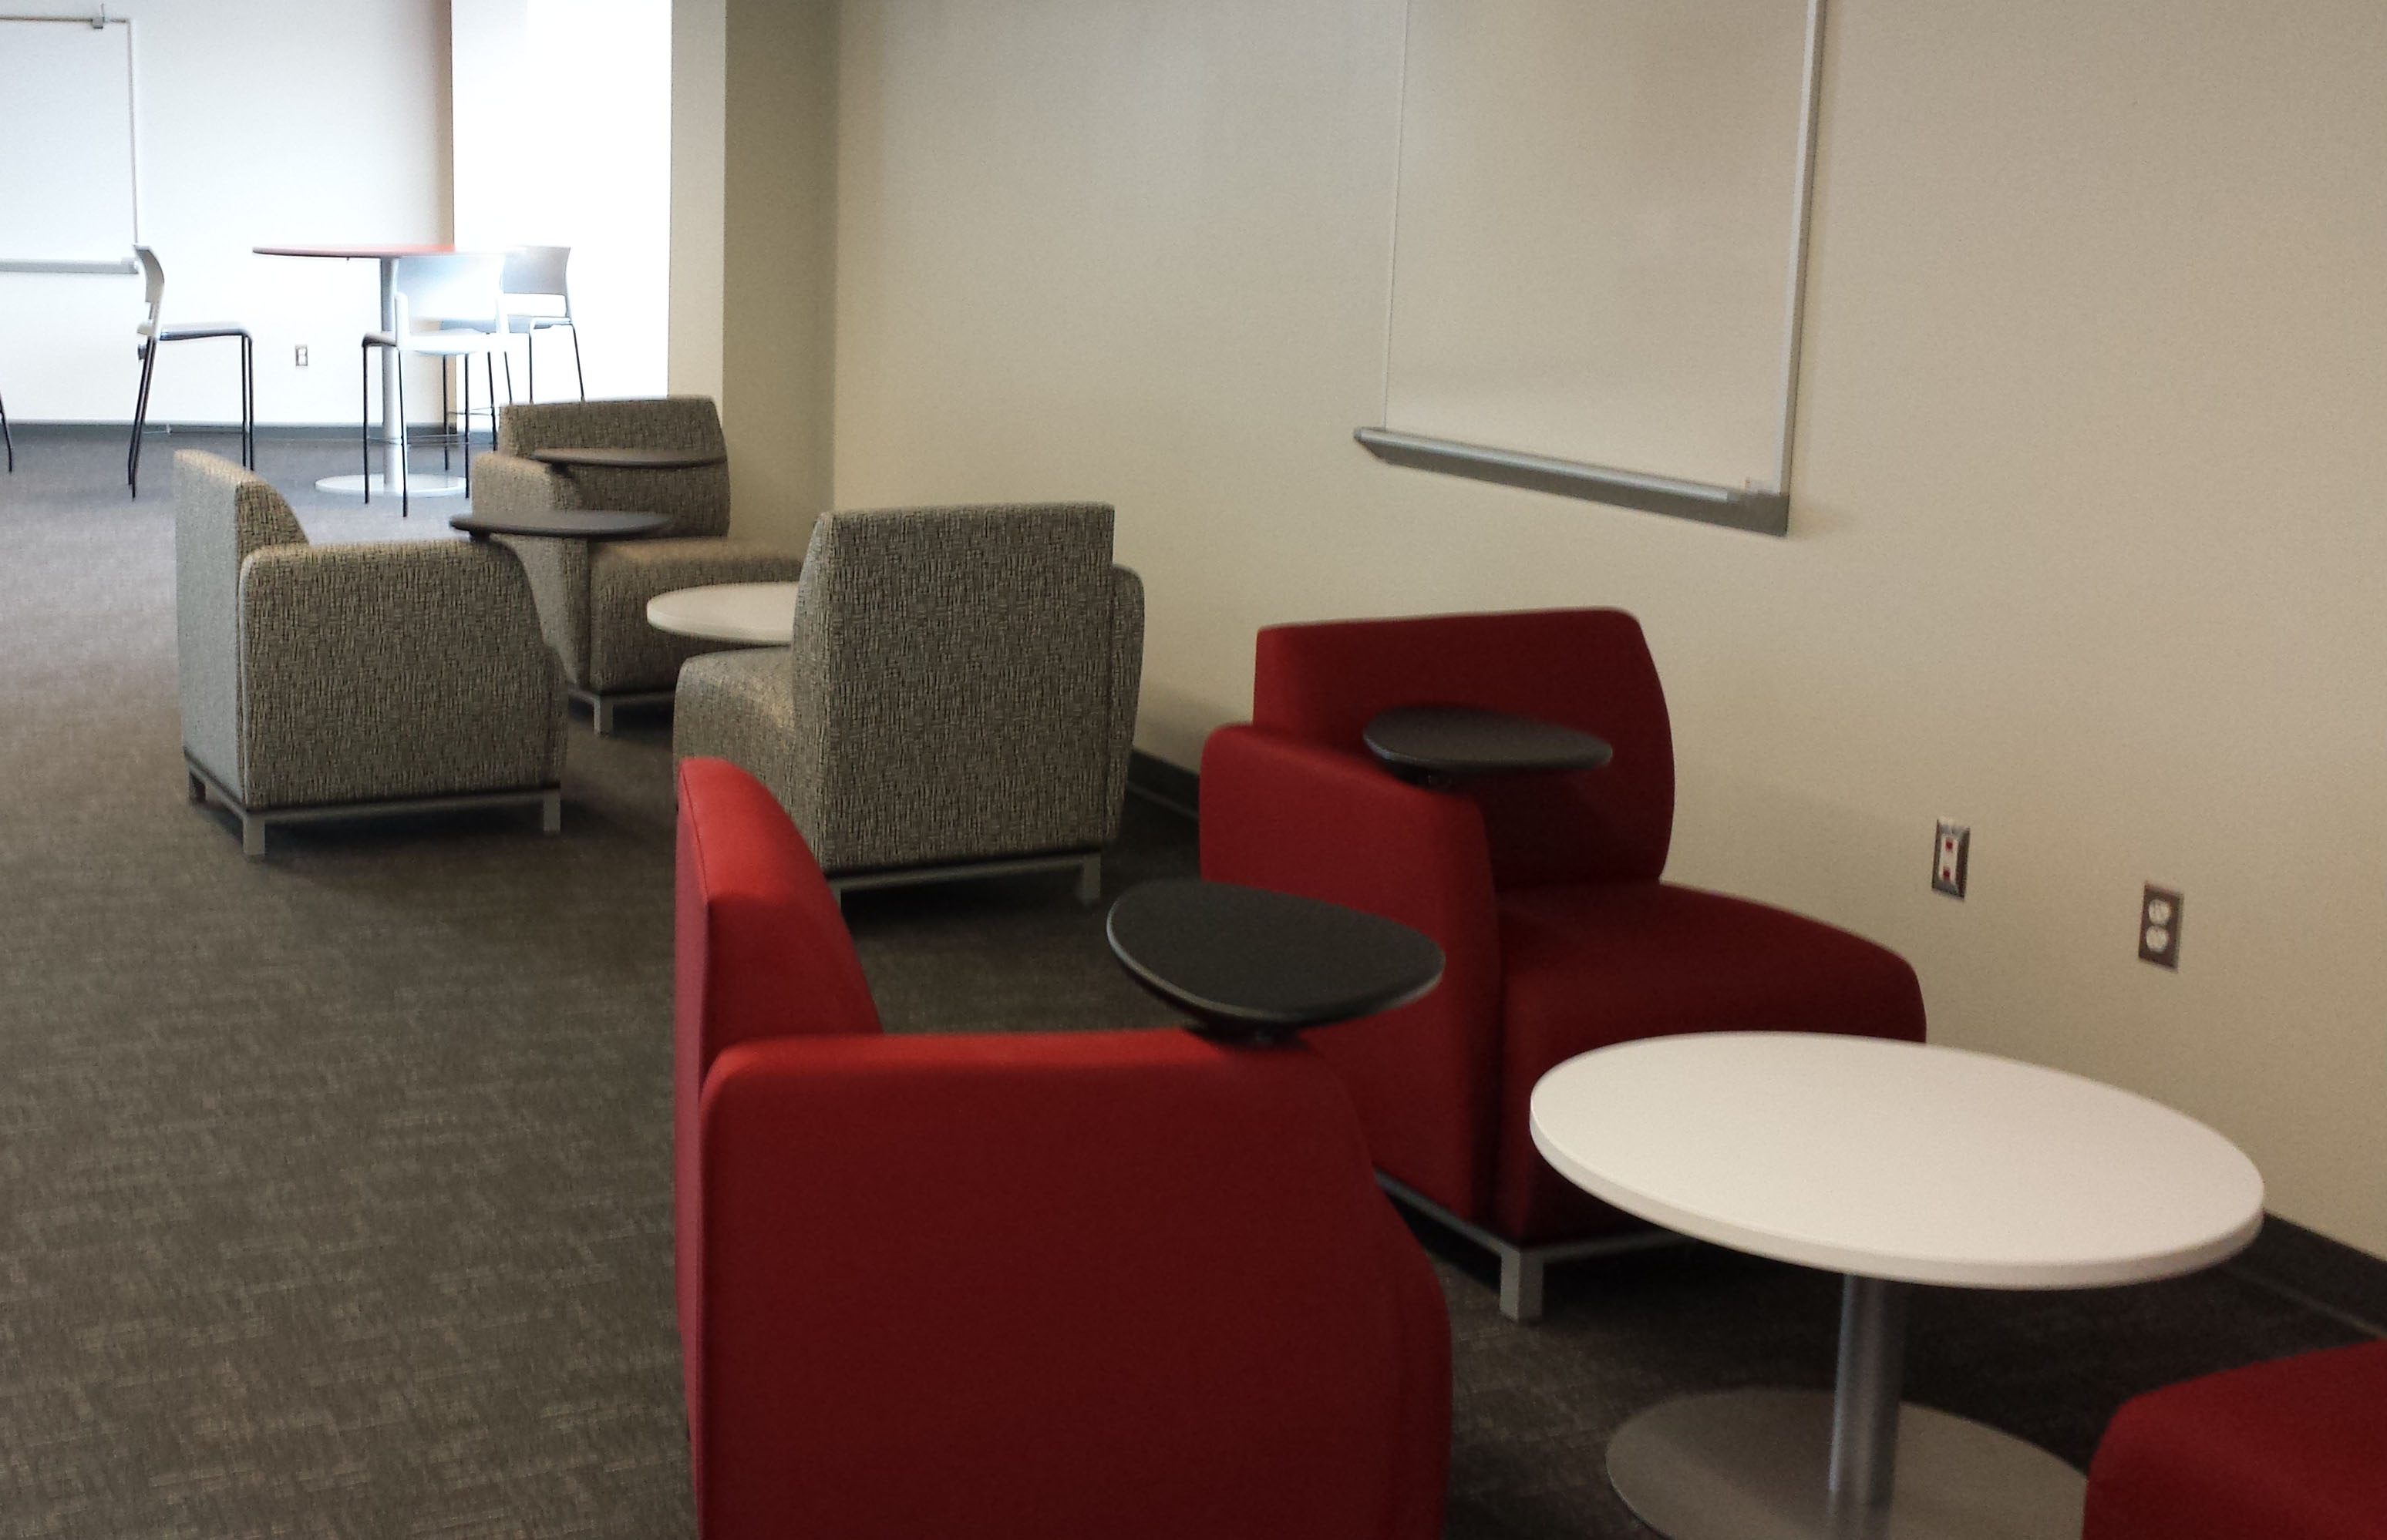 A lobby off the language classrooms provides space for students to study together, practice their vocabulary or make up tests